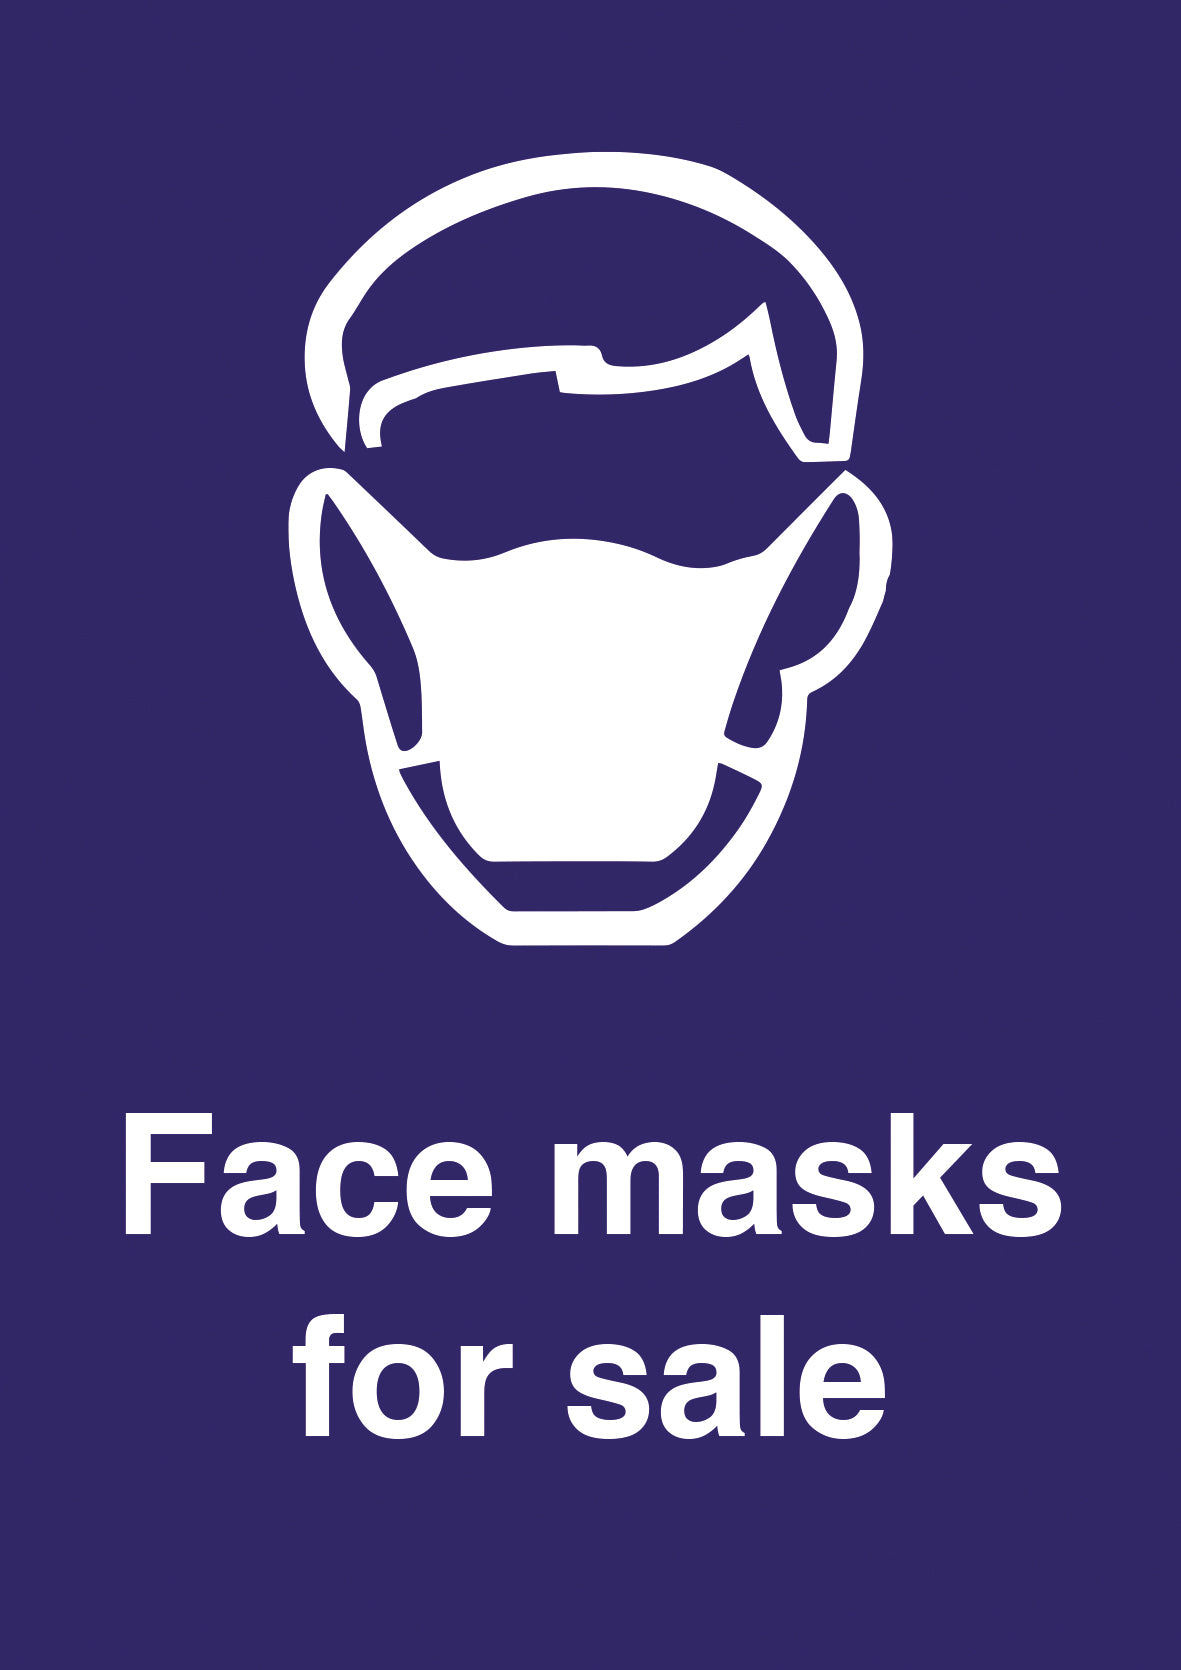 Face masks for sale hardwearing poster